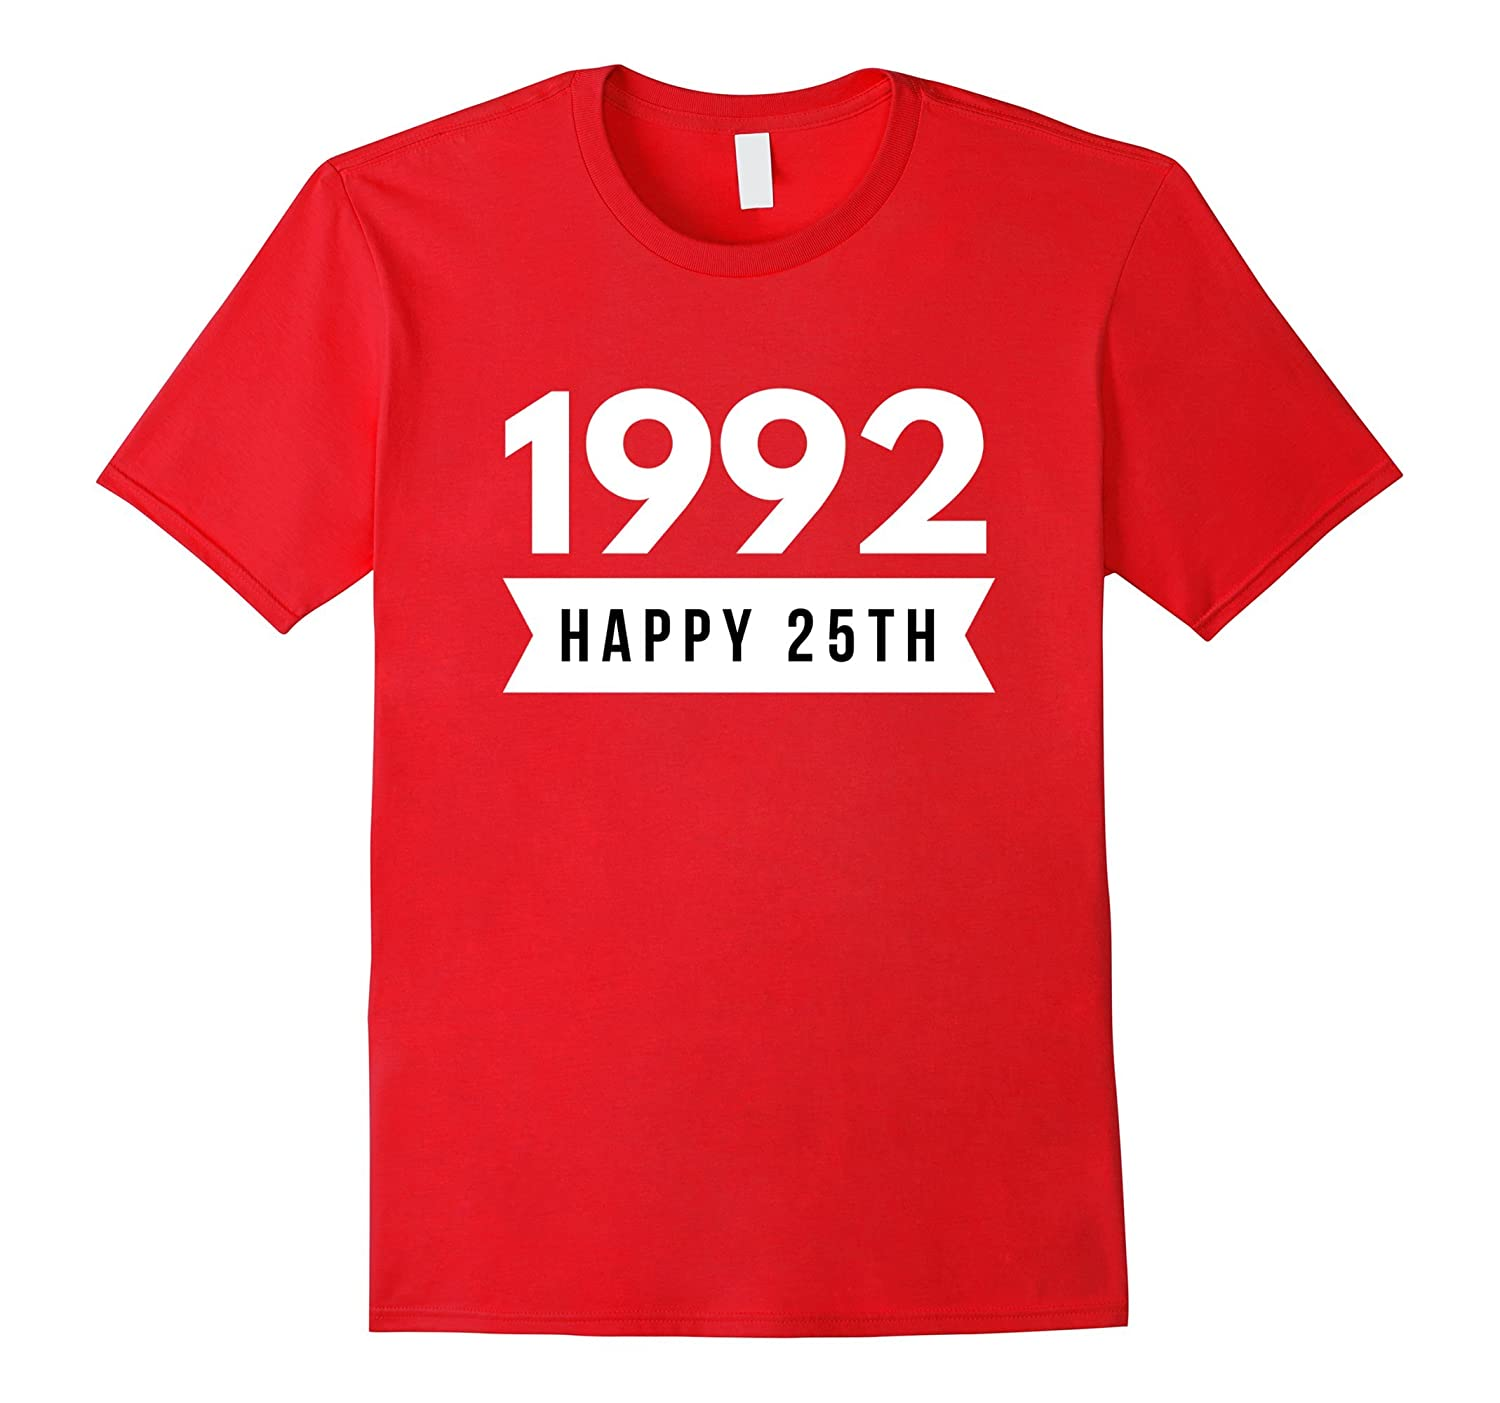 1992 Happy 25th Birthday Party Celebration Gift T-Shirt-Art